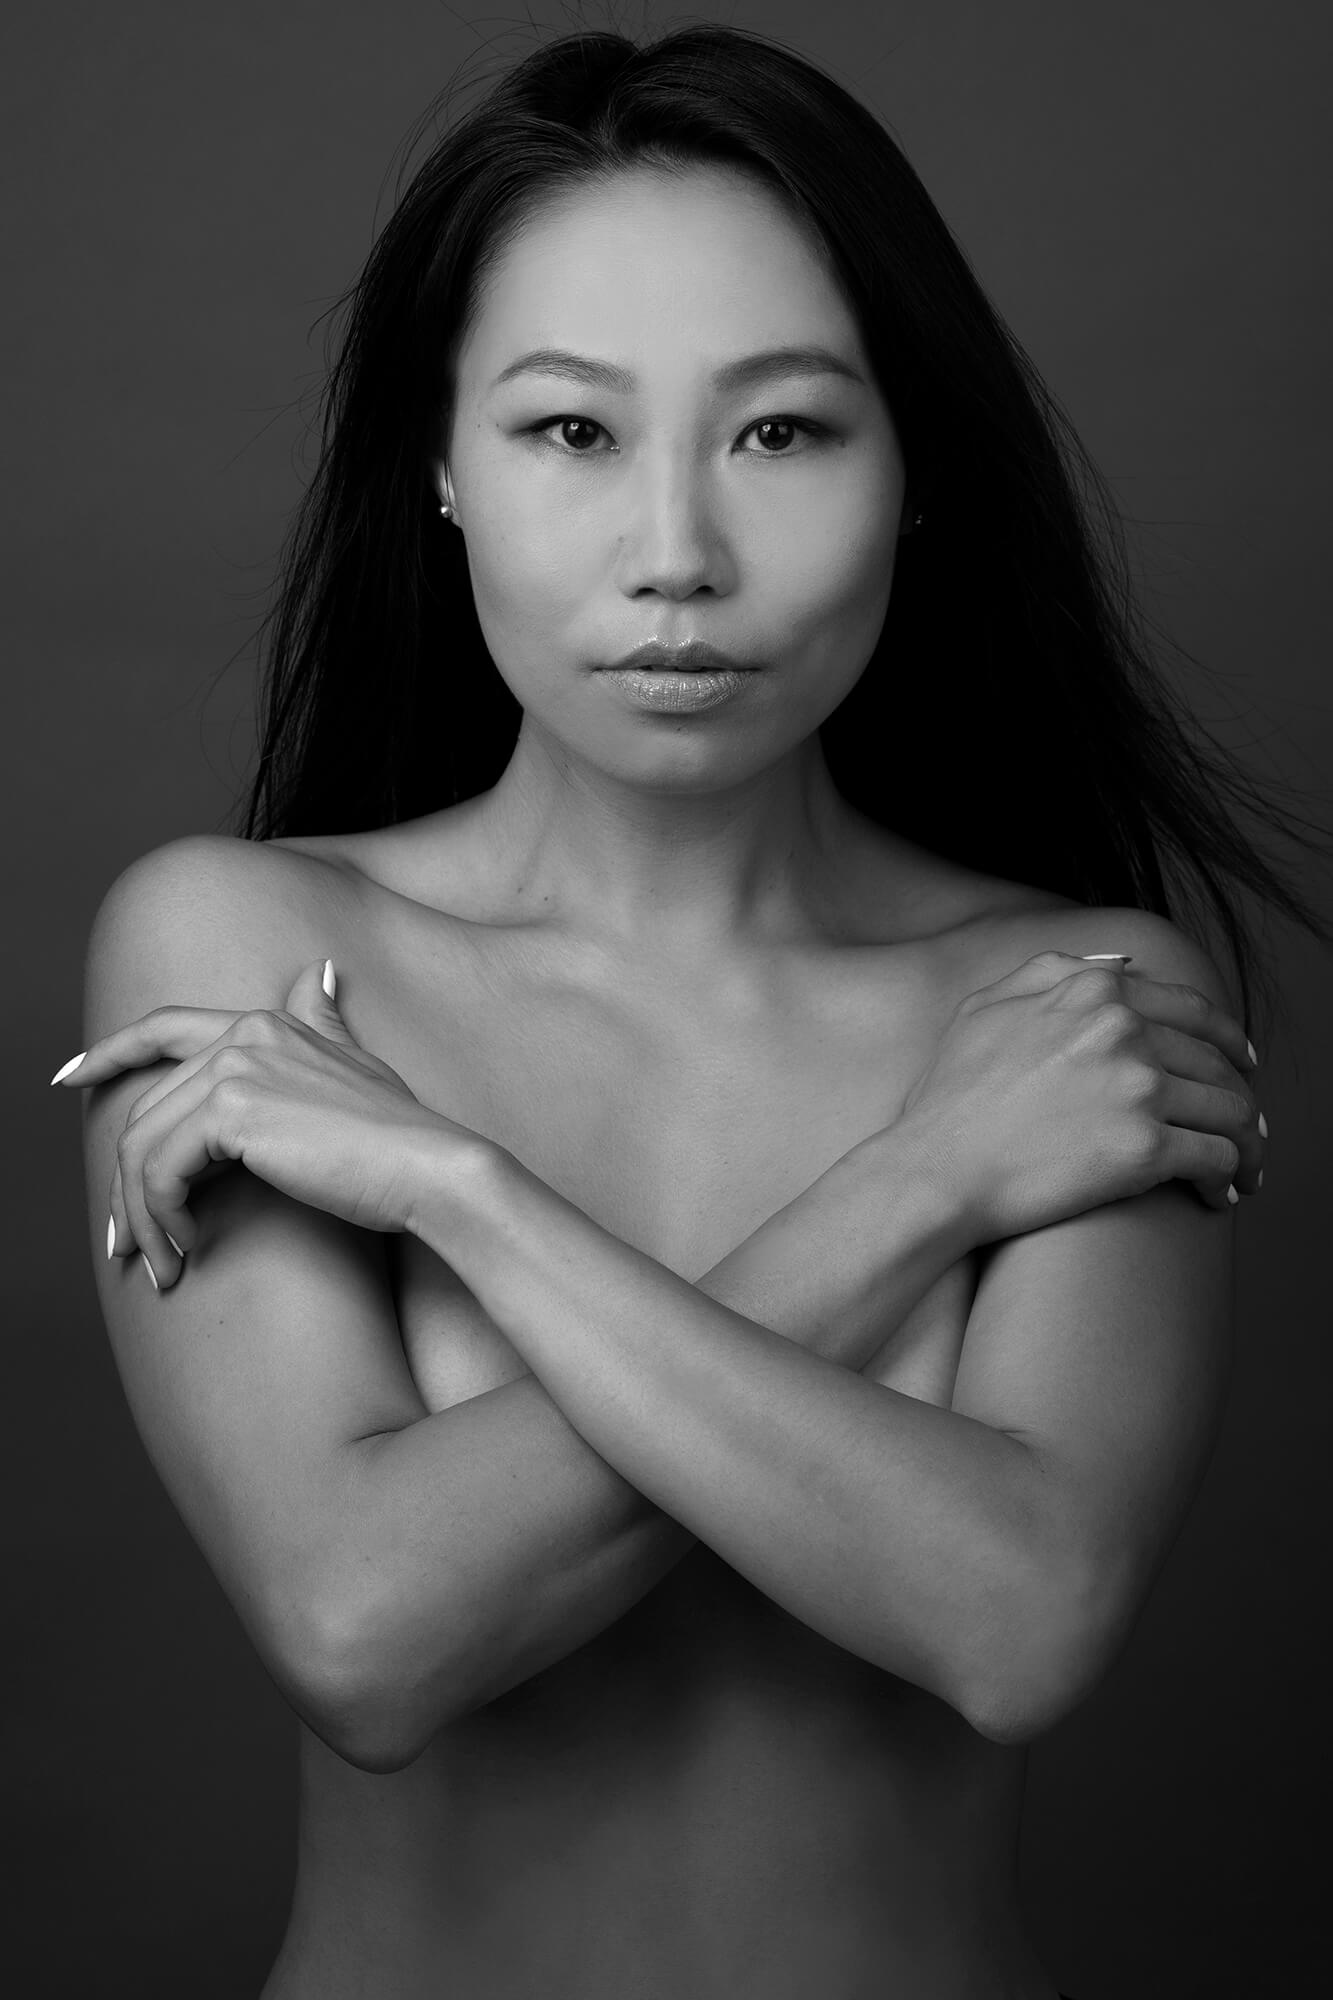 A portrait of an Asian girl on a black and white photo, standing topless and looking straight. Has a long black hair.Topless, looking straight and covering her self